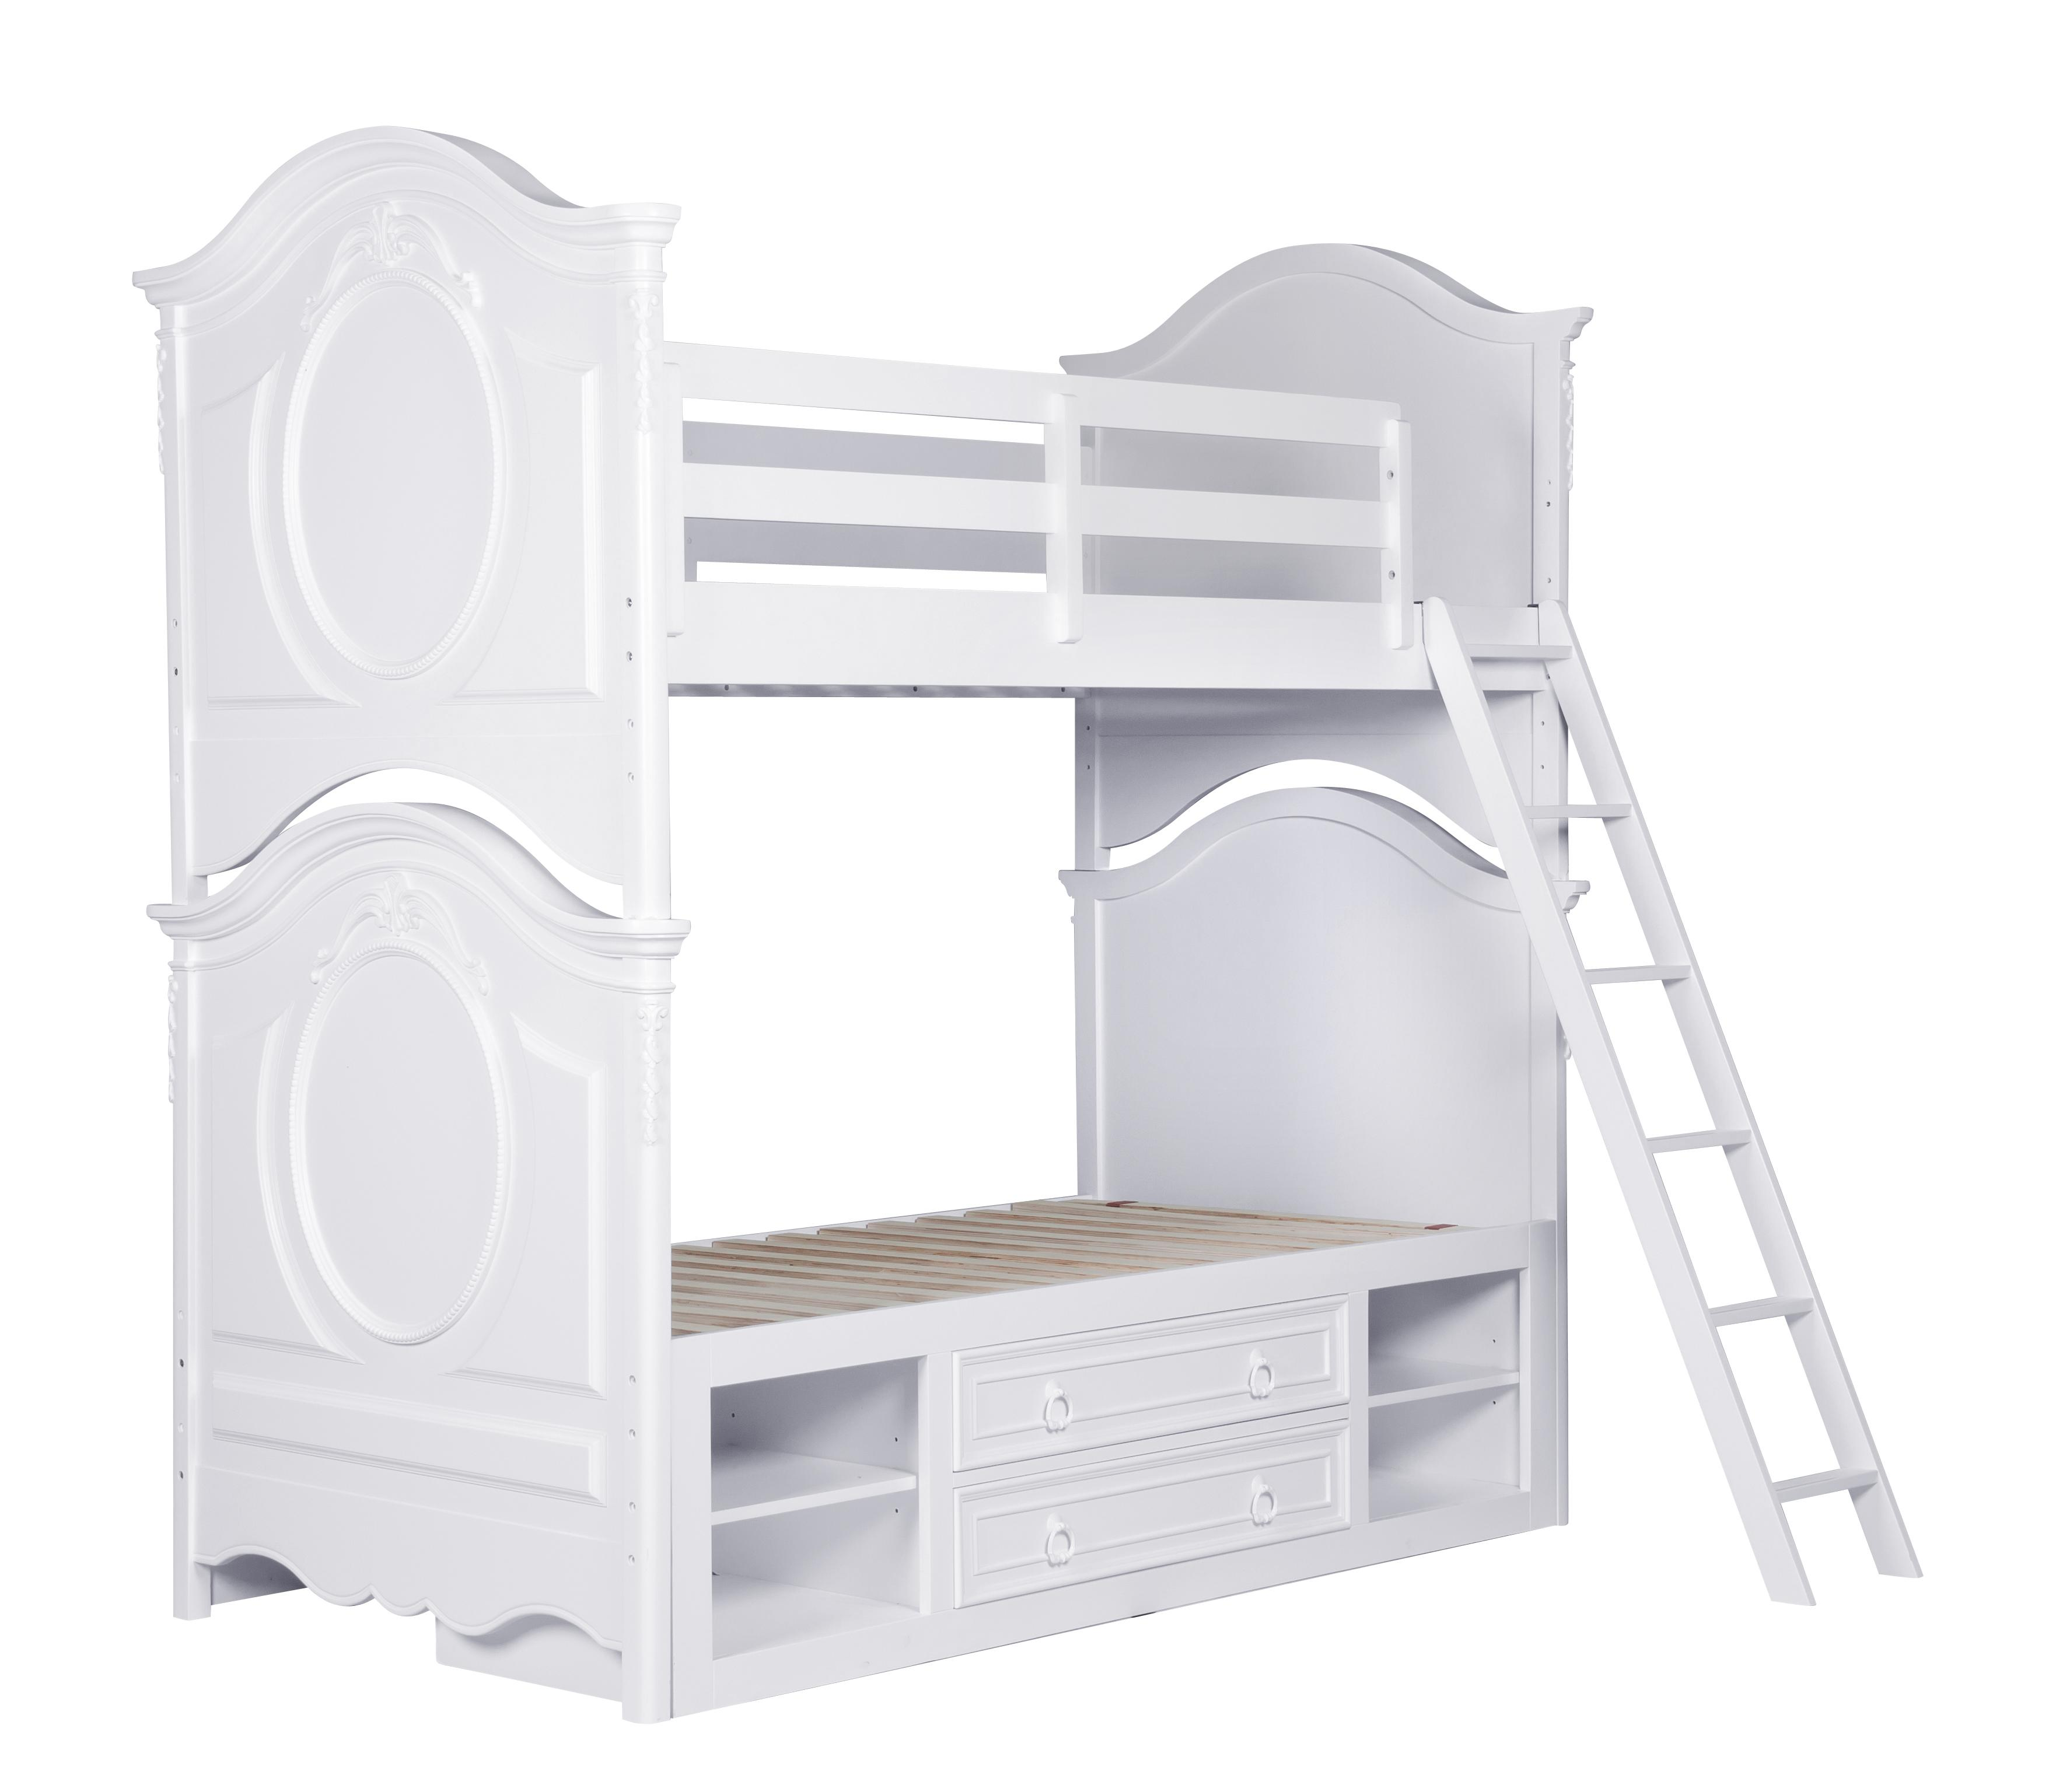 Kidz Gear Eleanor Twin Bunk Bed - Item Number: 8470-730+32+31+643+2x8466-SLATR-33